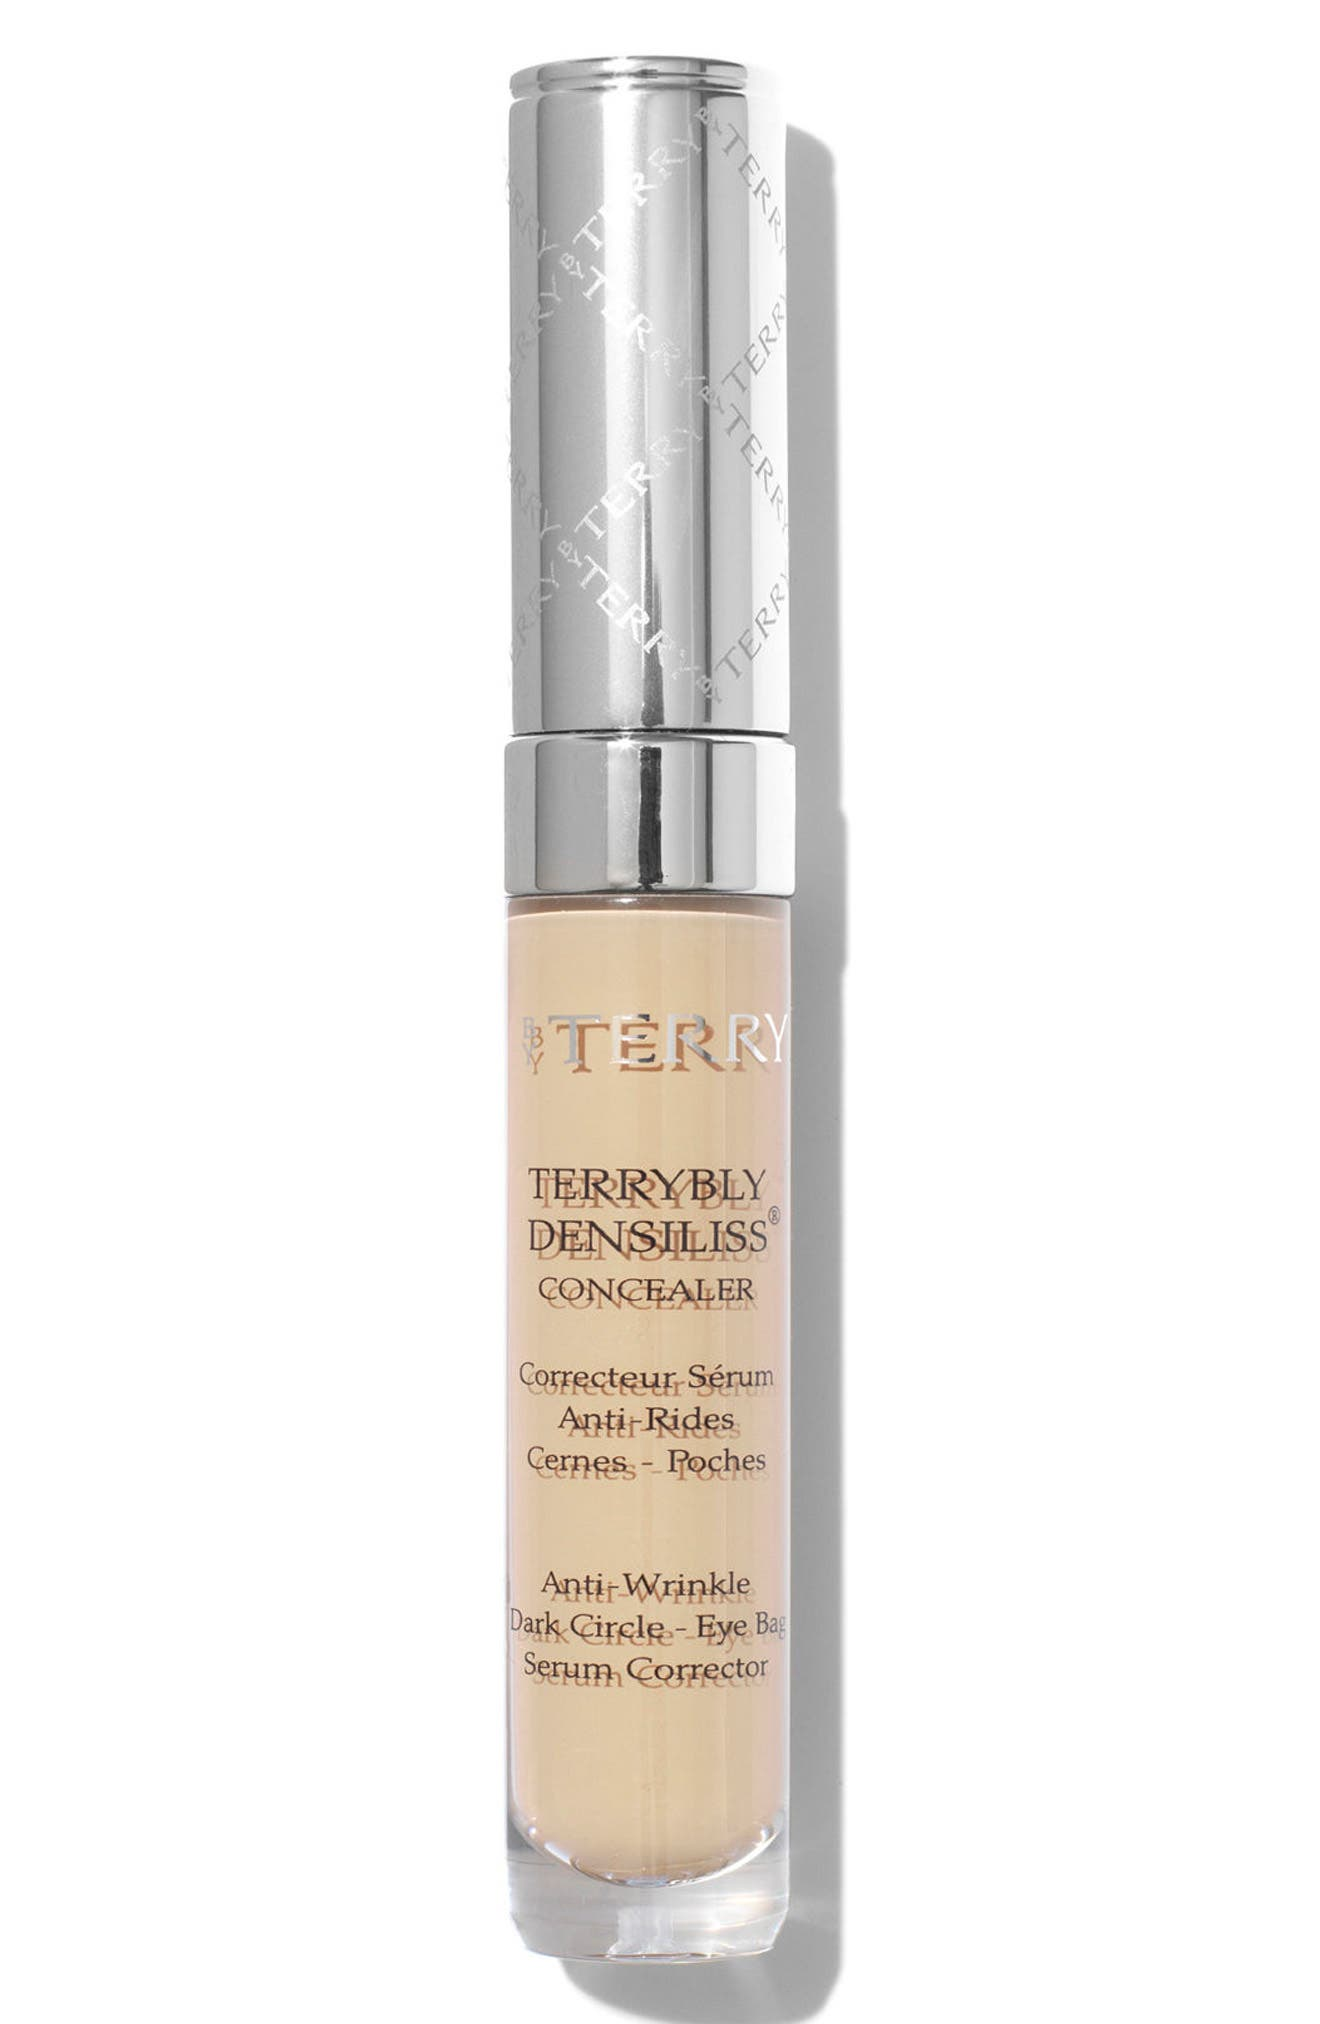 By Terry Terrybly Densiliss Concealer 7ml (various Shades) - 3. Natural Beige In 3 Natural Beige